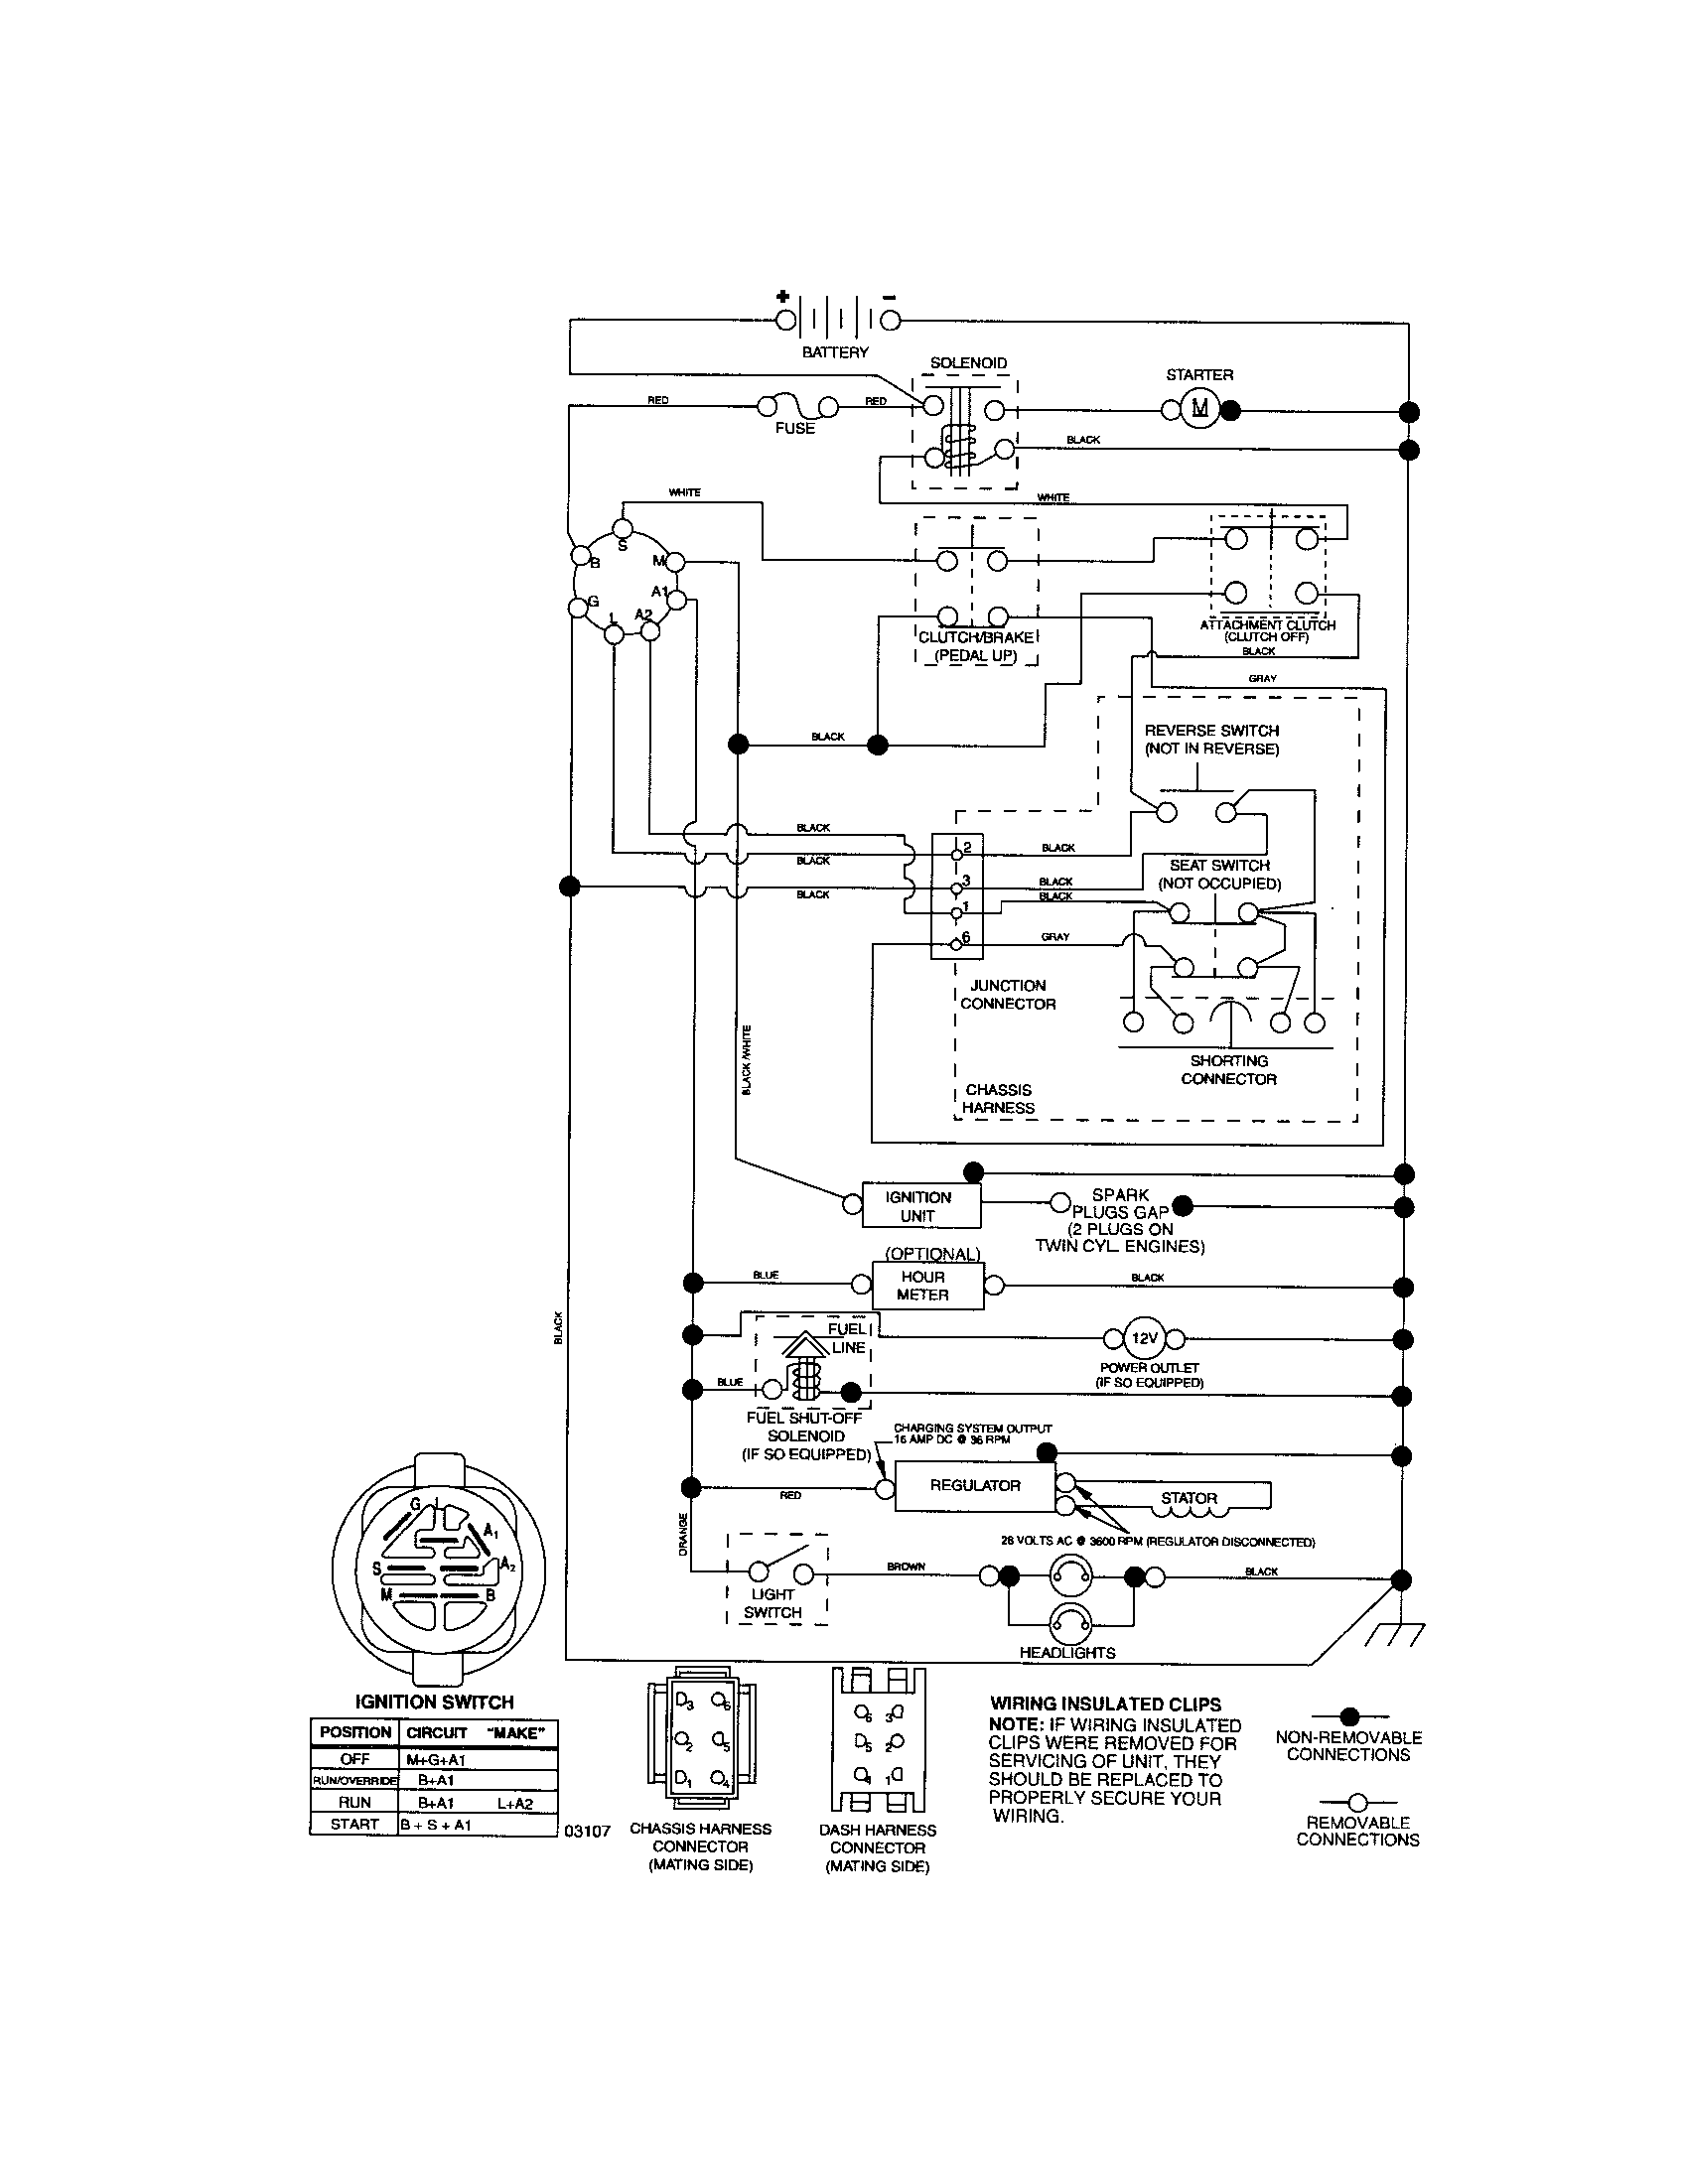 6af5f1447fd13c8443376822ddc1e105 craftsman riding mower electrical diagram wiring diagram Universal Wiring Harness Diagram at nearapp.co